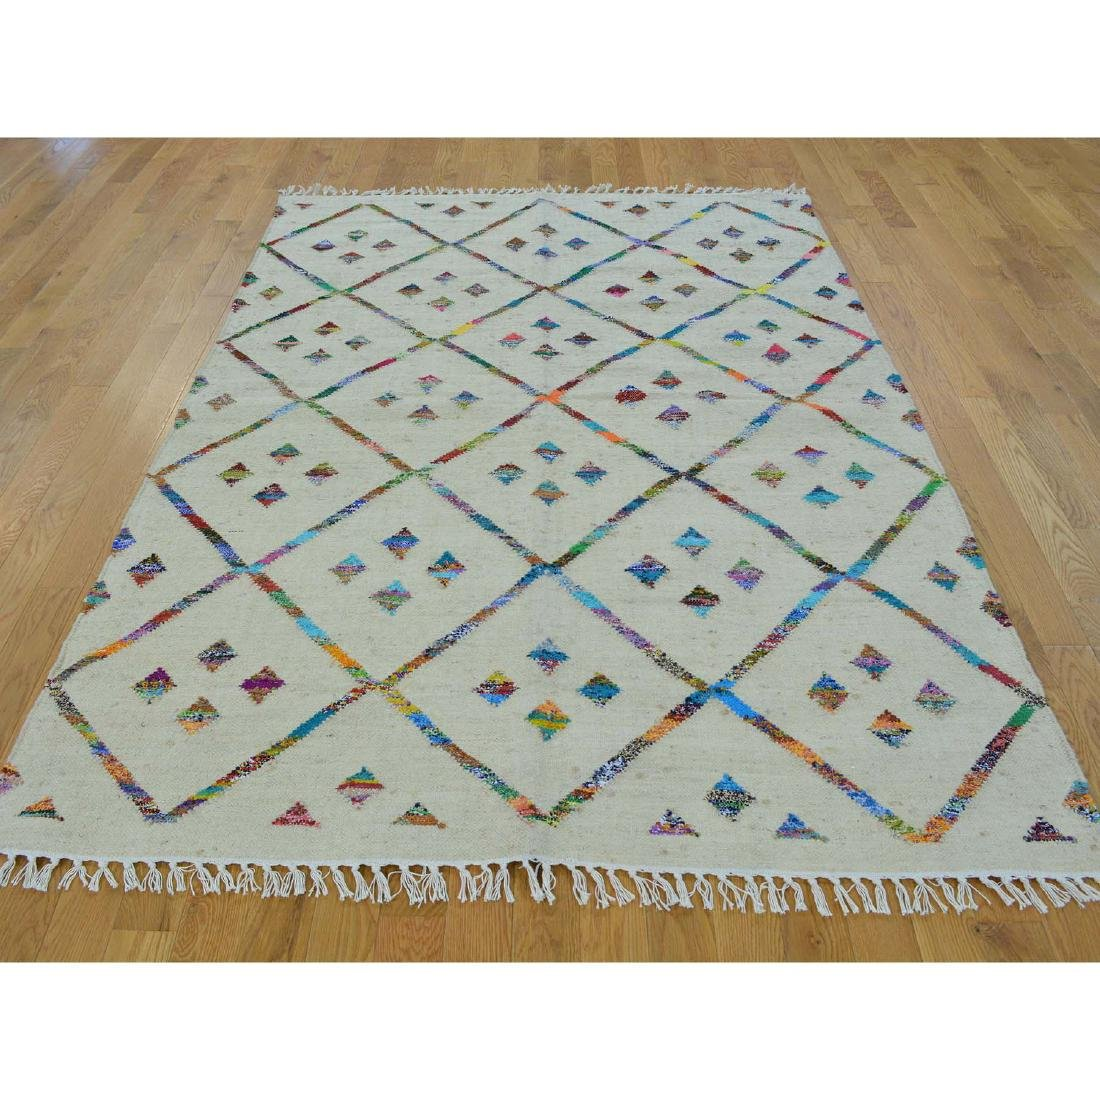 Handmade Geometric Durie Kilim Rug Wool and 5x7.4 - 2